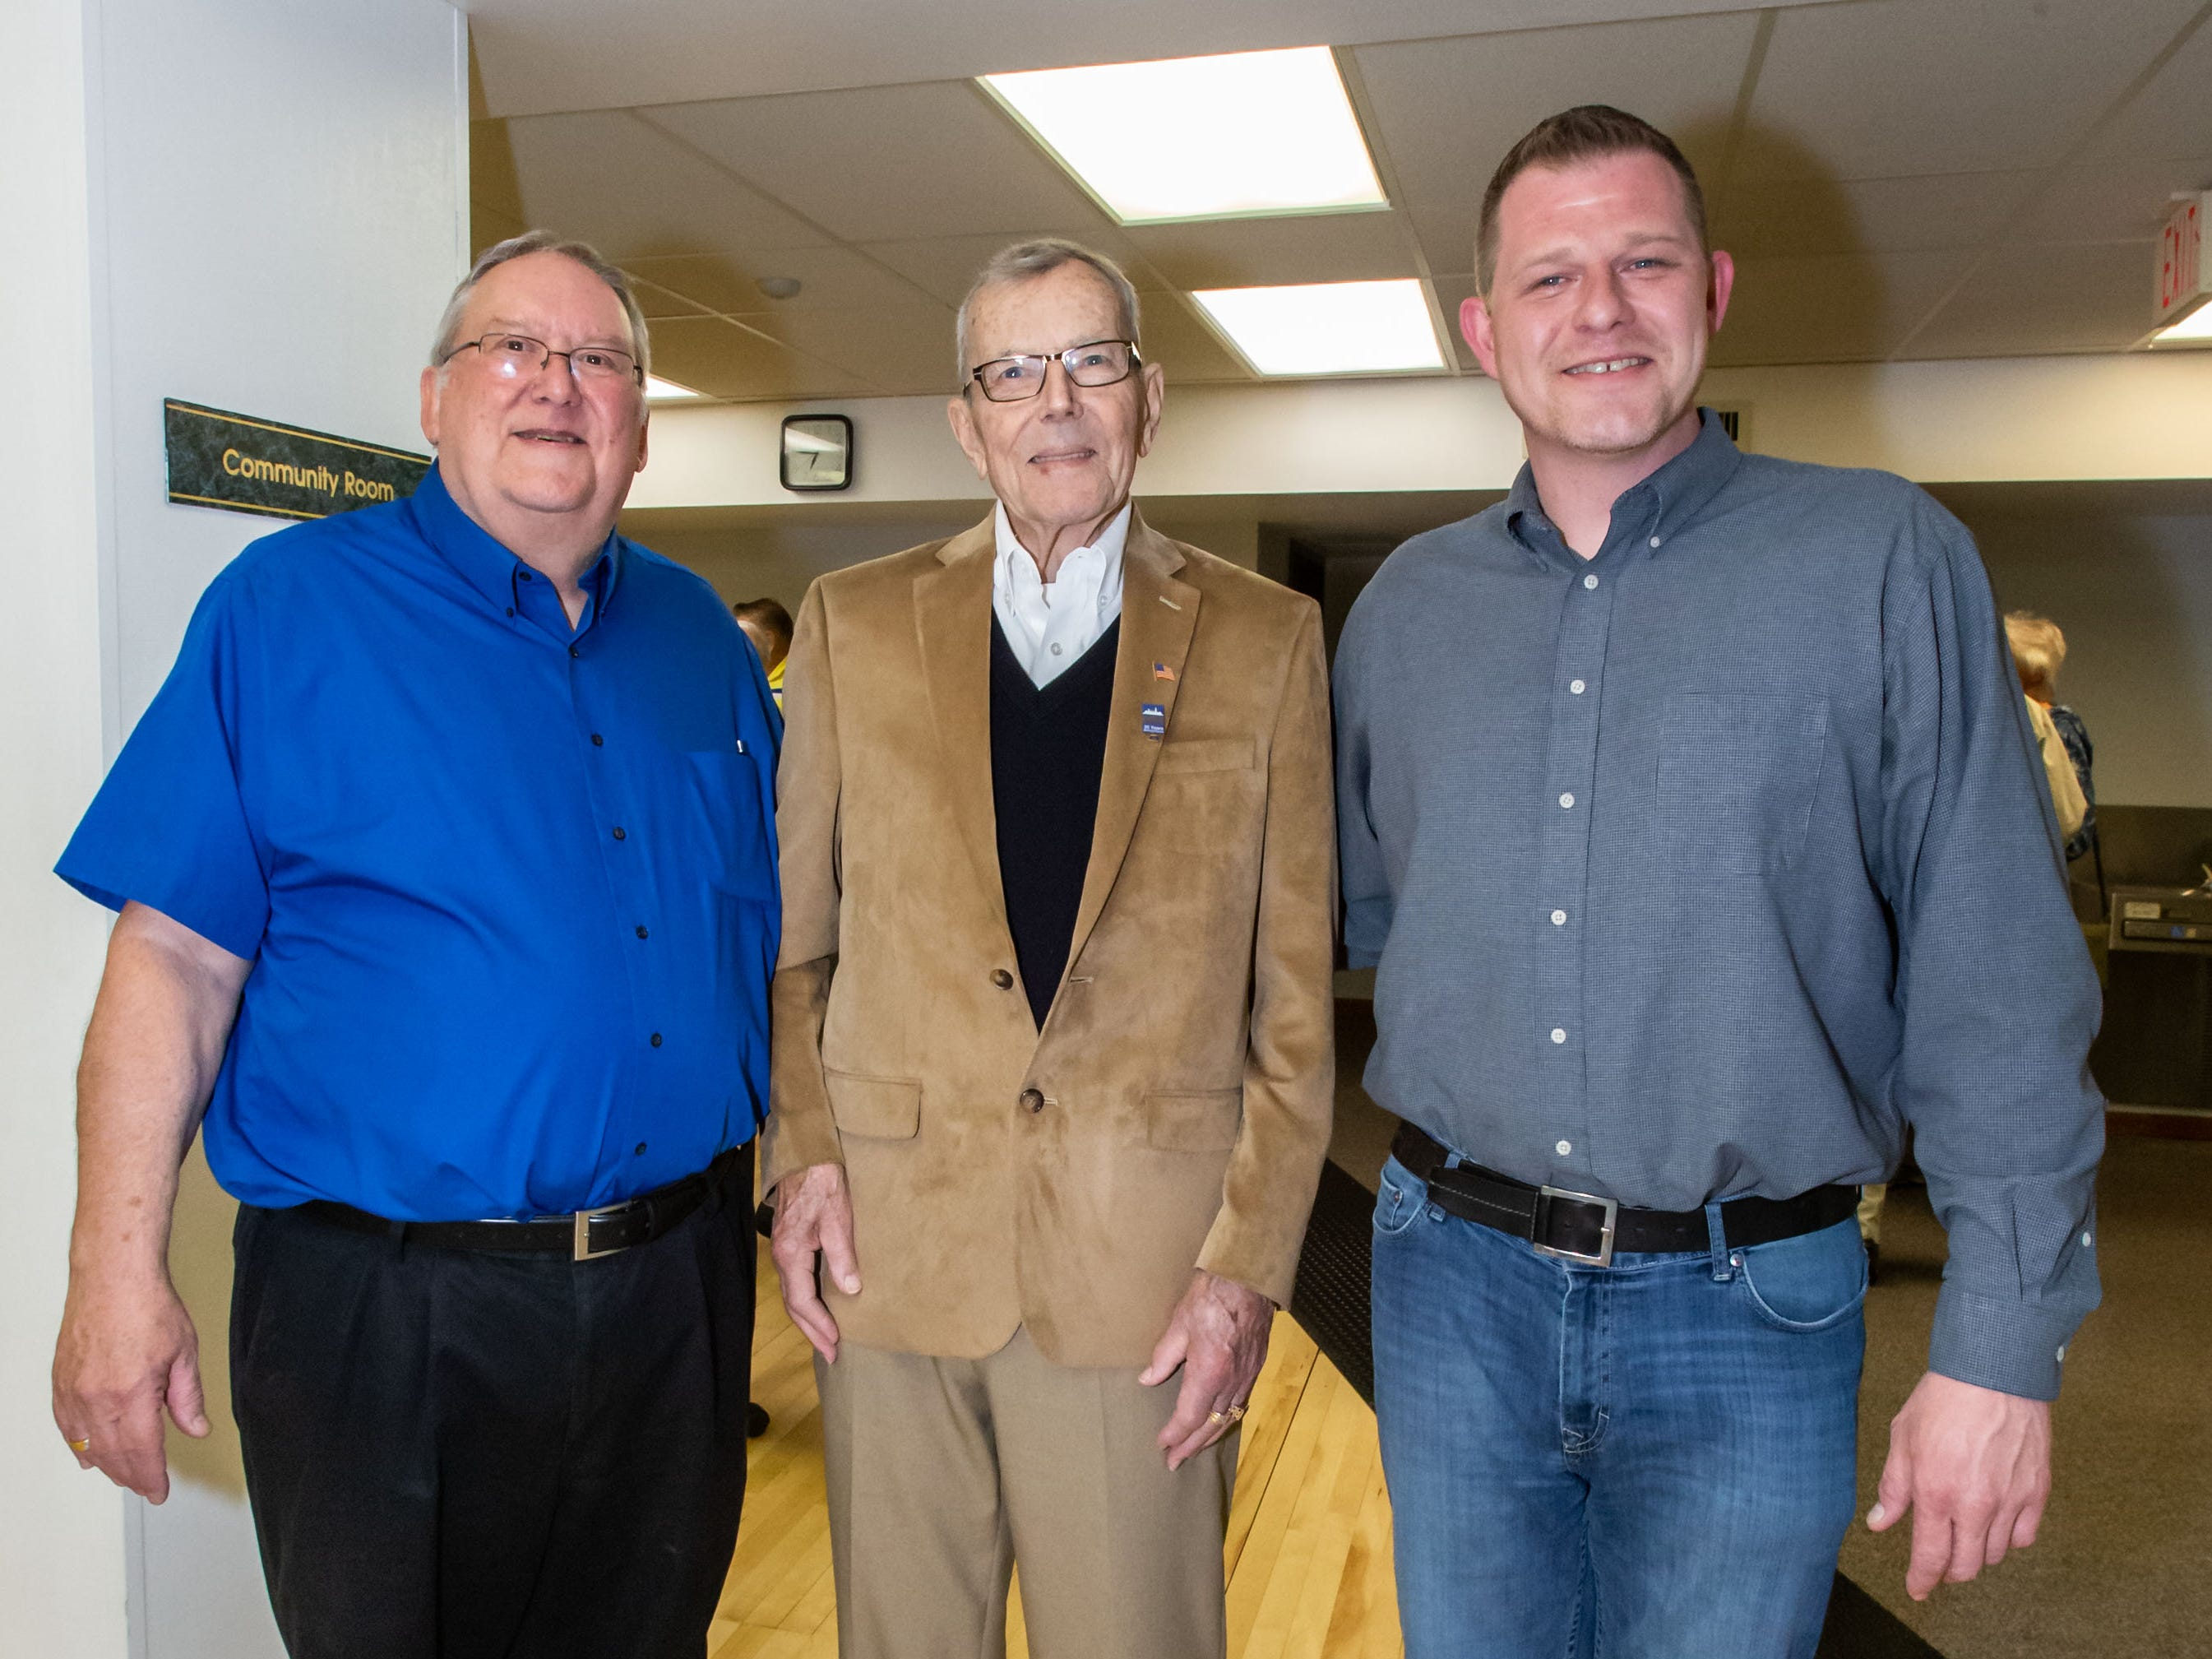 Hartland Village Board trustee Richard Landwehr (center) poses for a photo with former Village Board President David Lamerand (left) and current Village Board President Jeffrey Pfannerstill during reception to honor Landwehr's 53 years of service on Monday, April 8, 2019. Landwehr also served as Village Board President from 1985 to 1987.